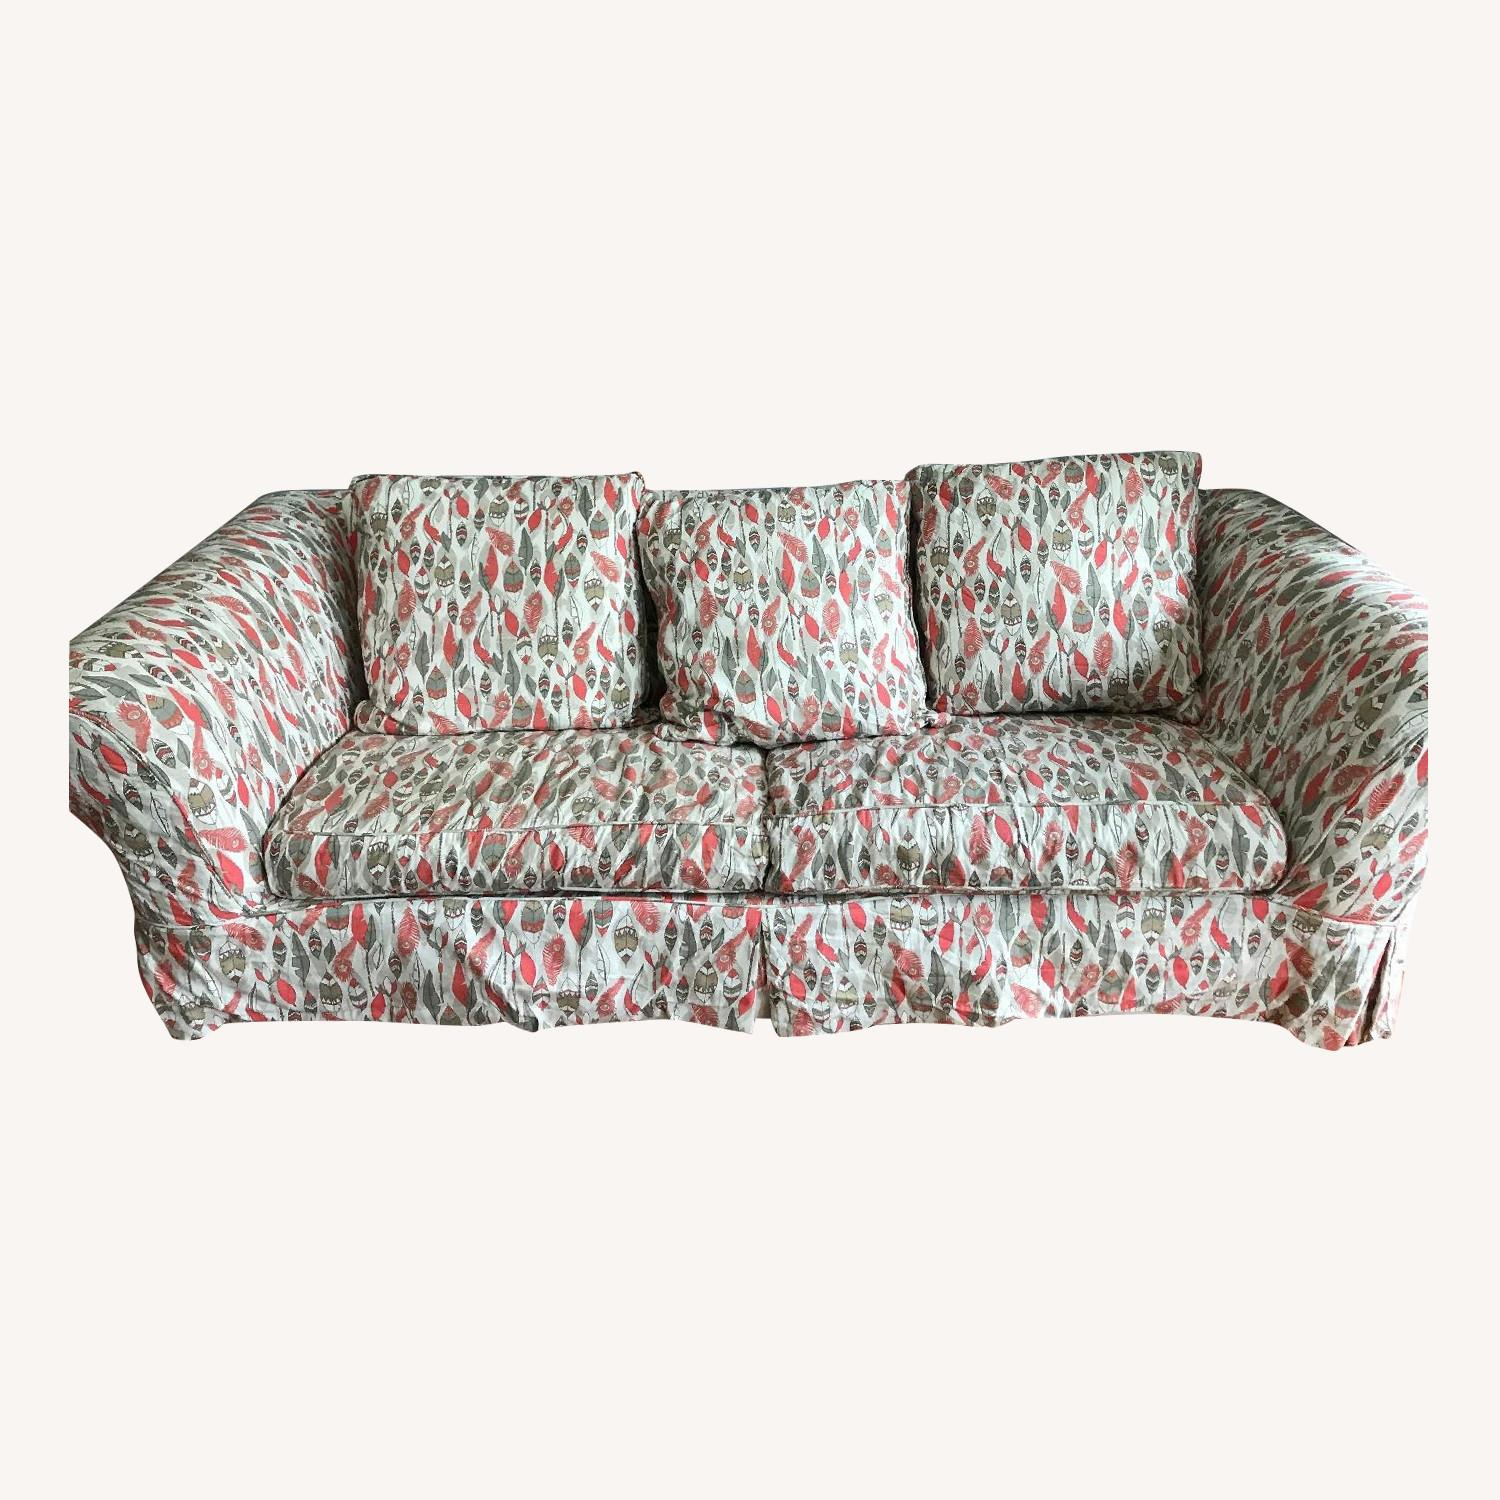 Jennifer Convertibles Queen Sleeper Sofa w/ Custom Slipcover